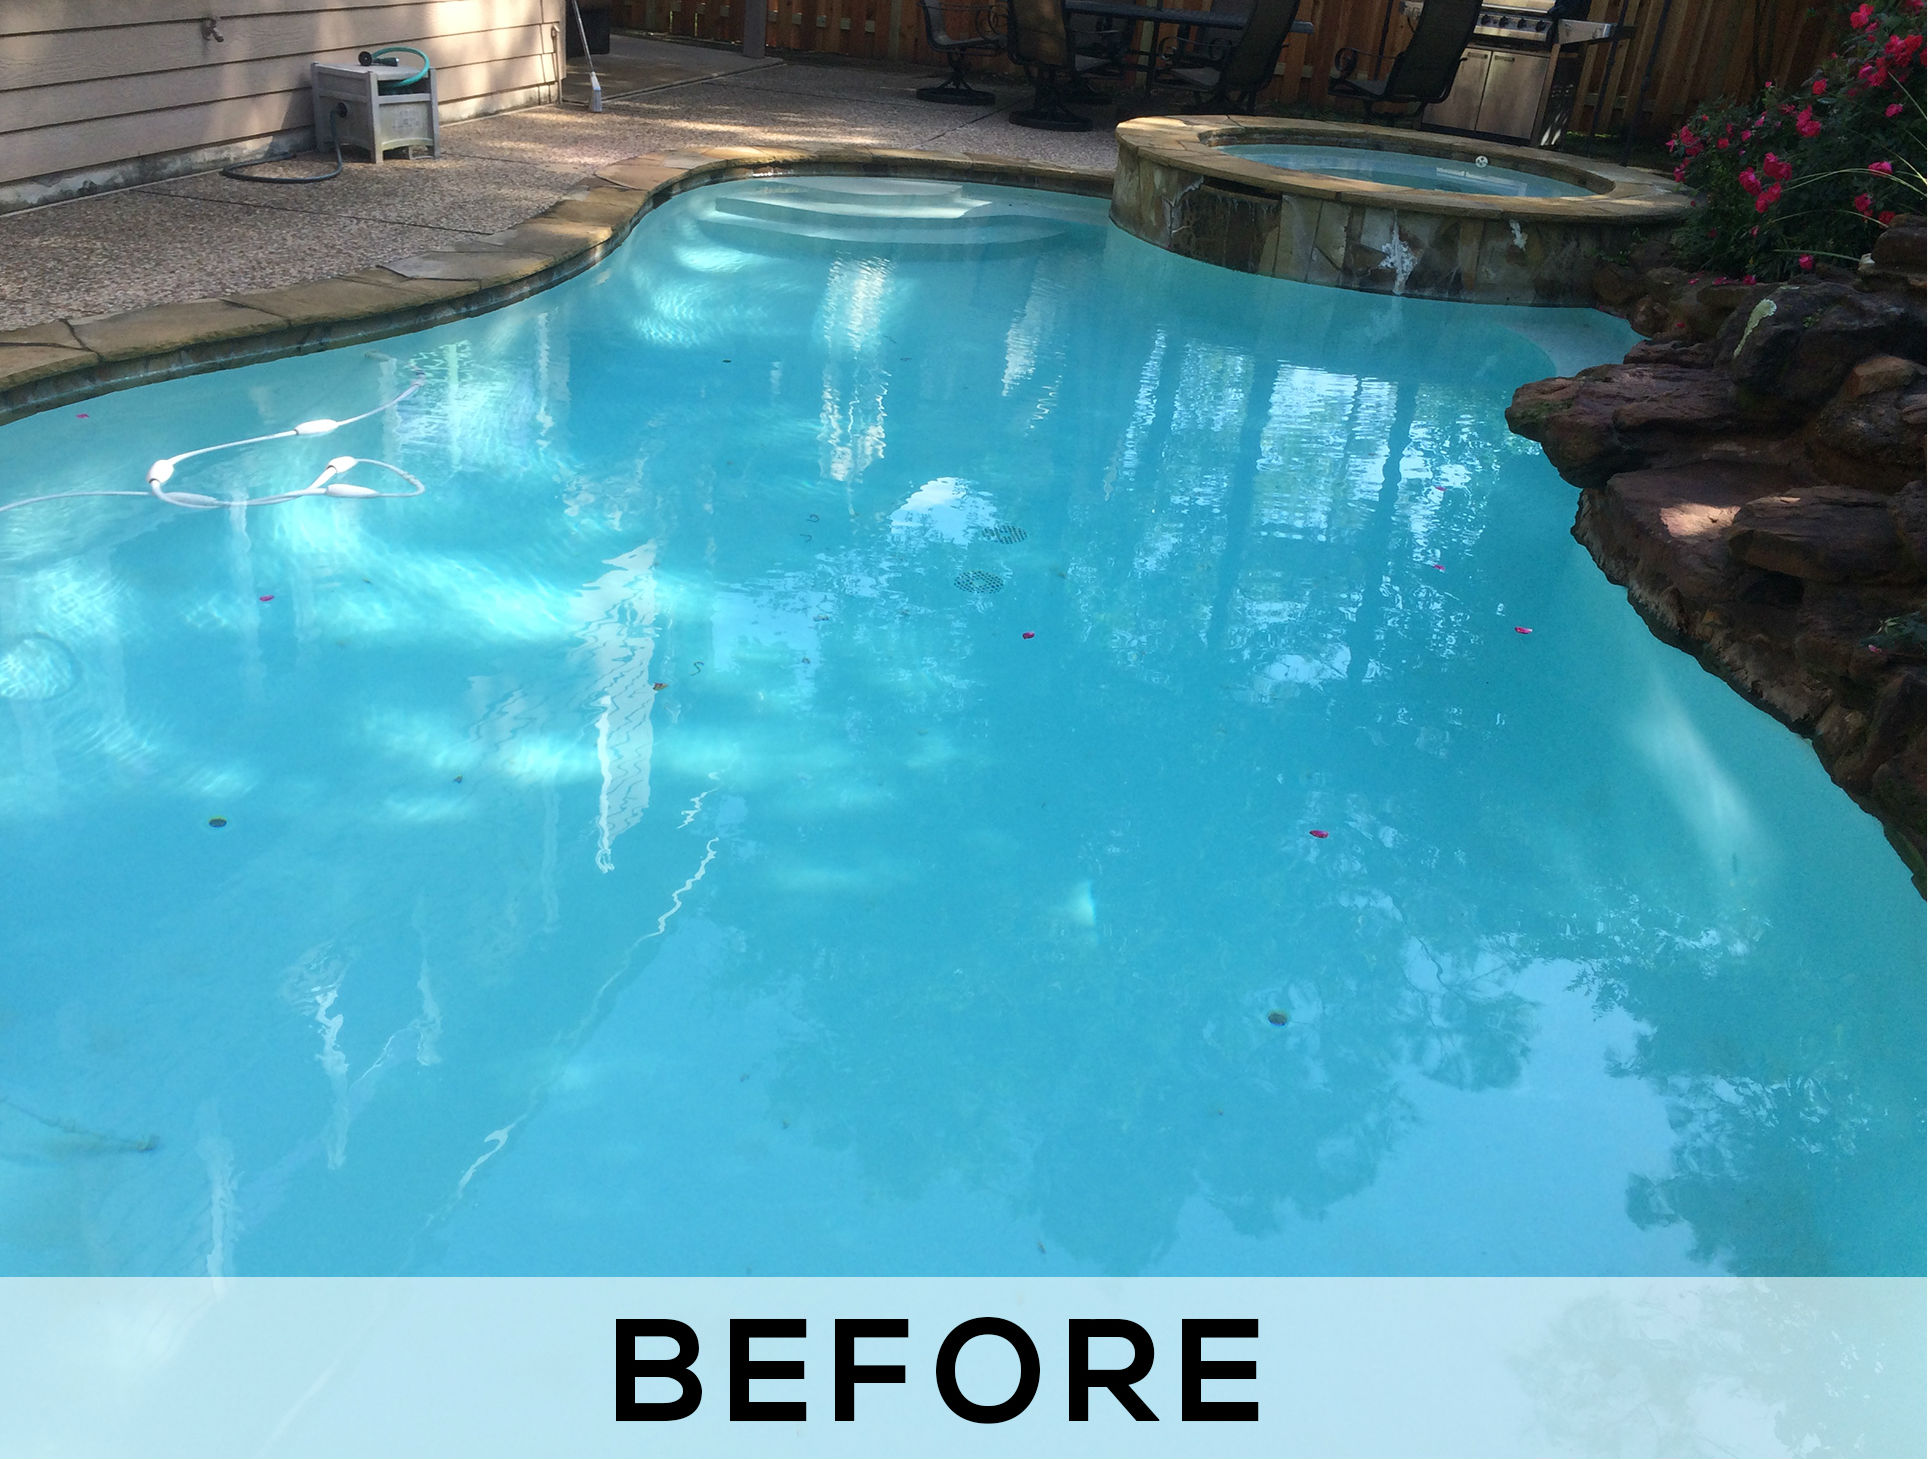 Pool Renovations Service - Before